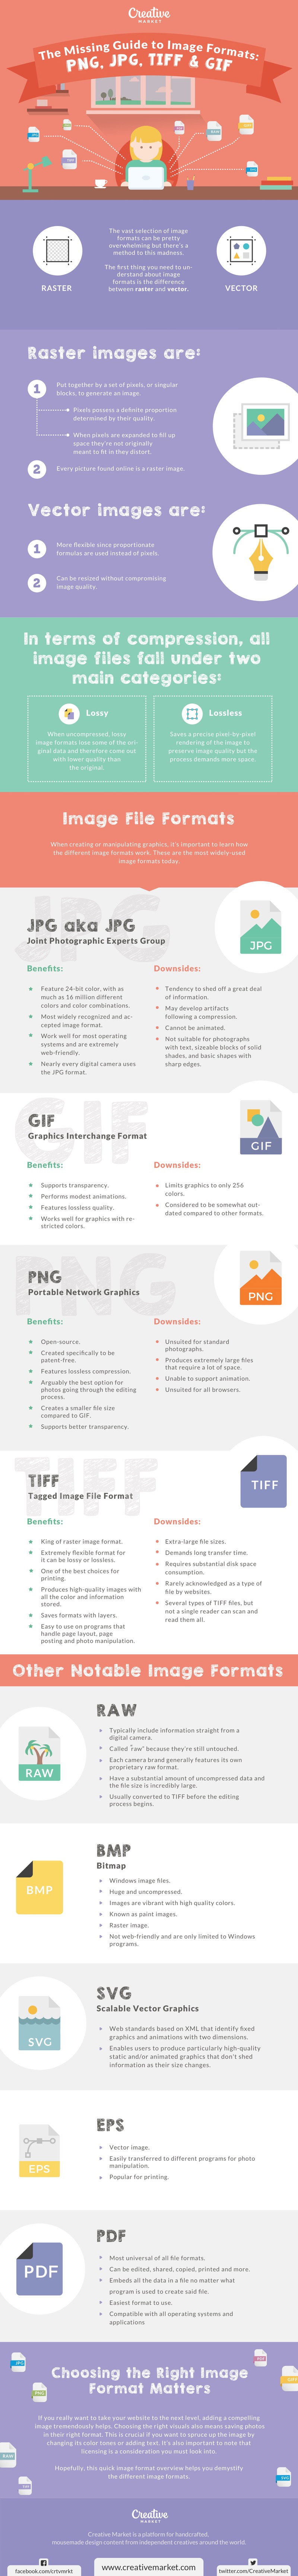 Infographic looks at the different image file types